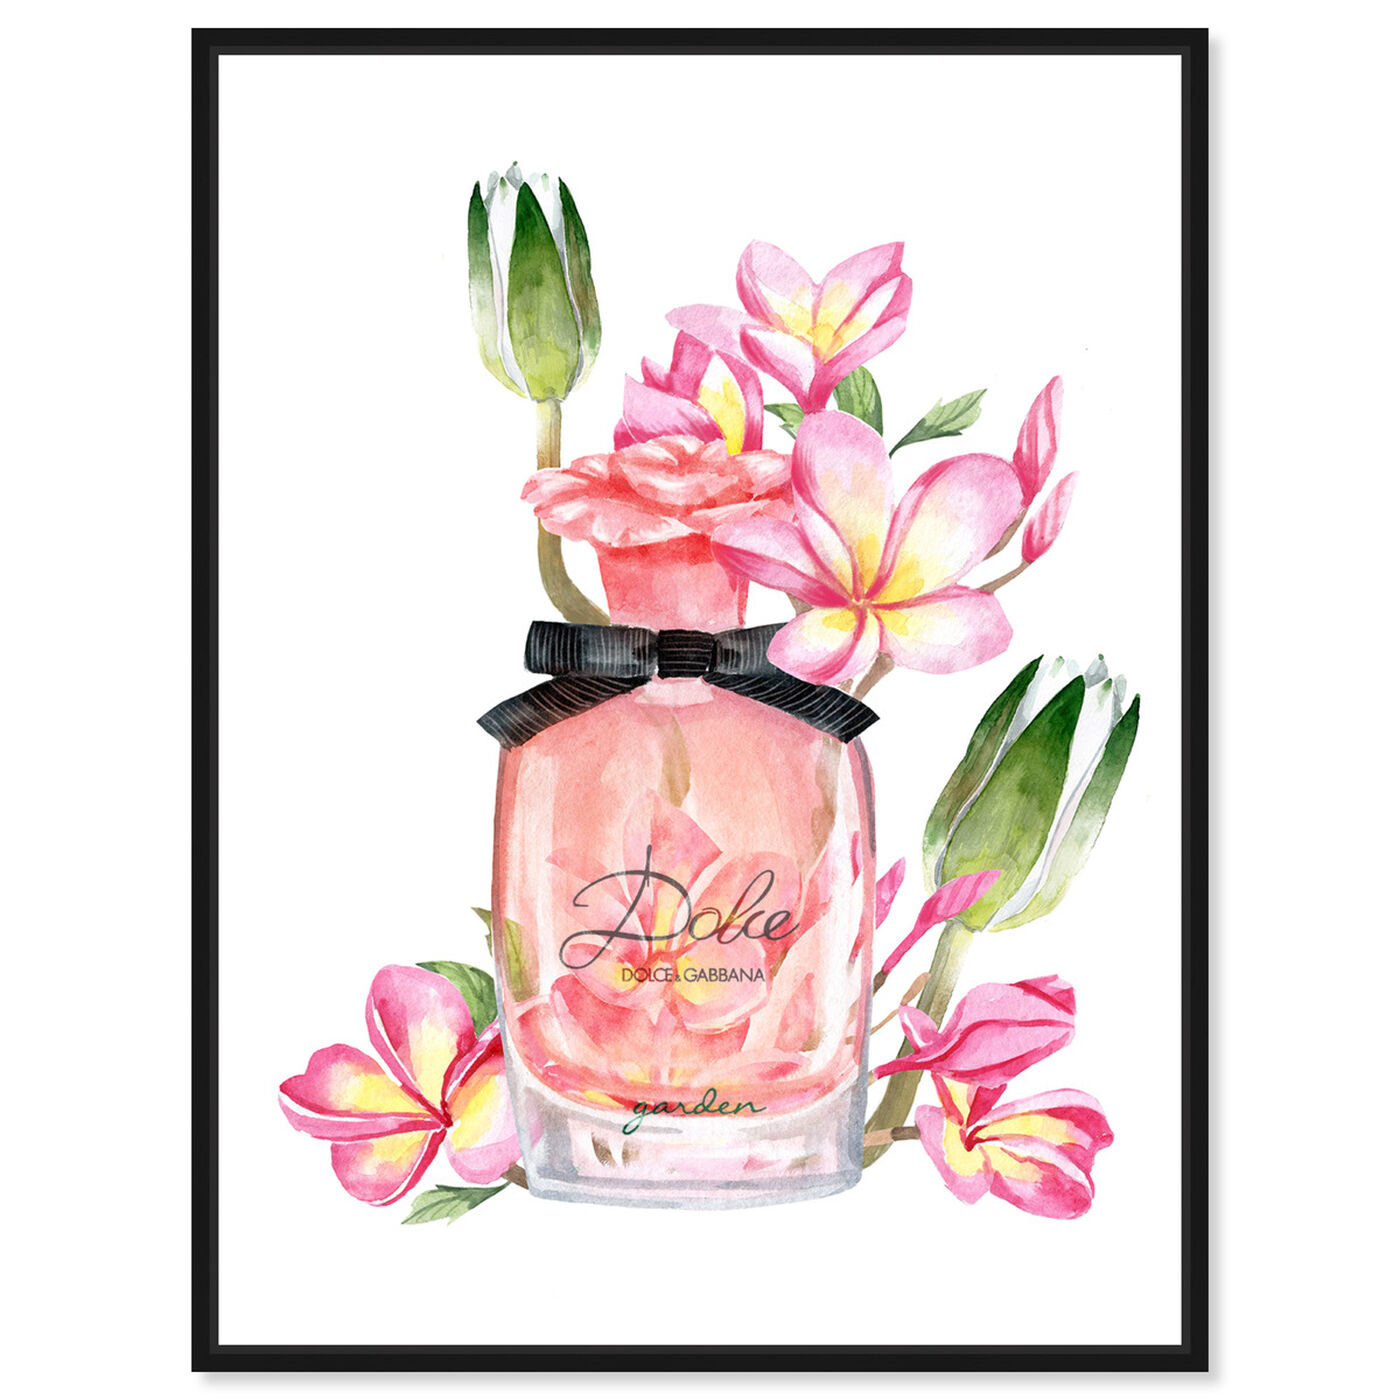 Front view of Garden Leaf Perfume featuring fashion and glam and perfumes art.